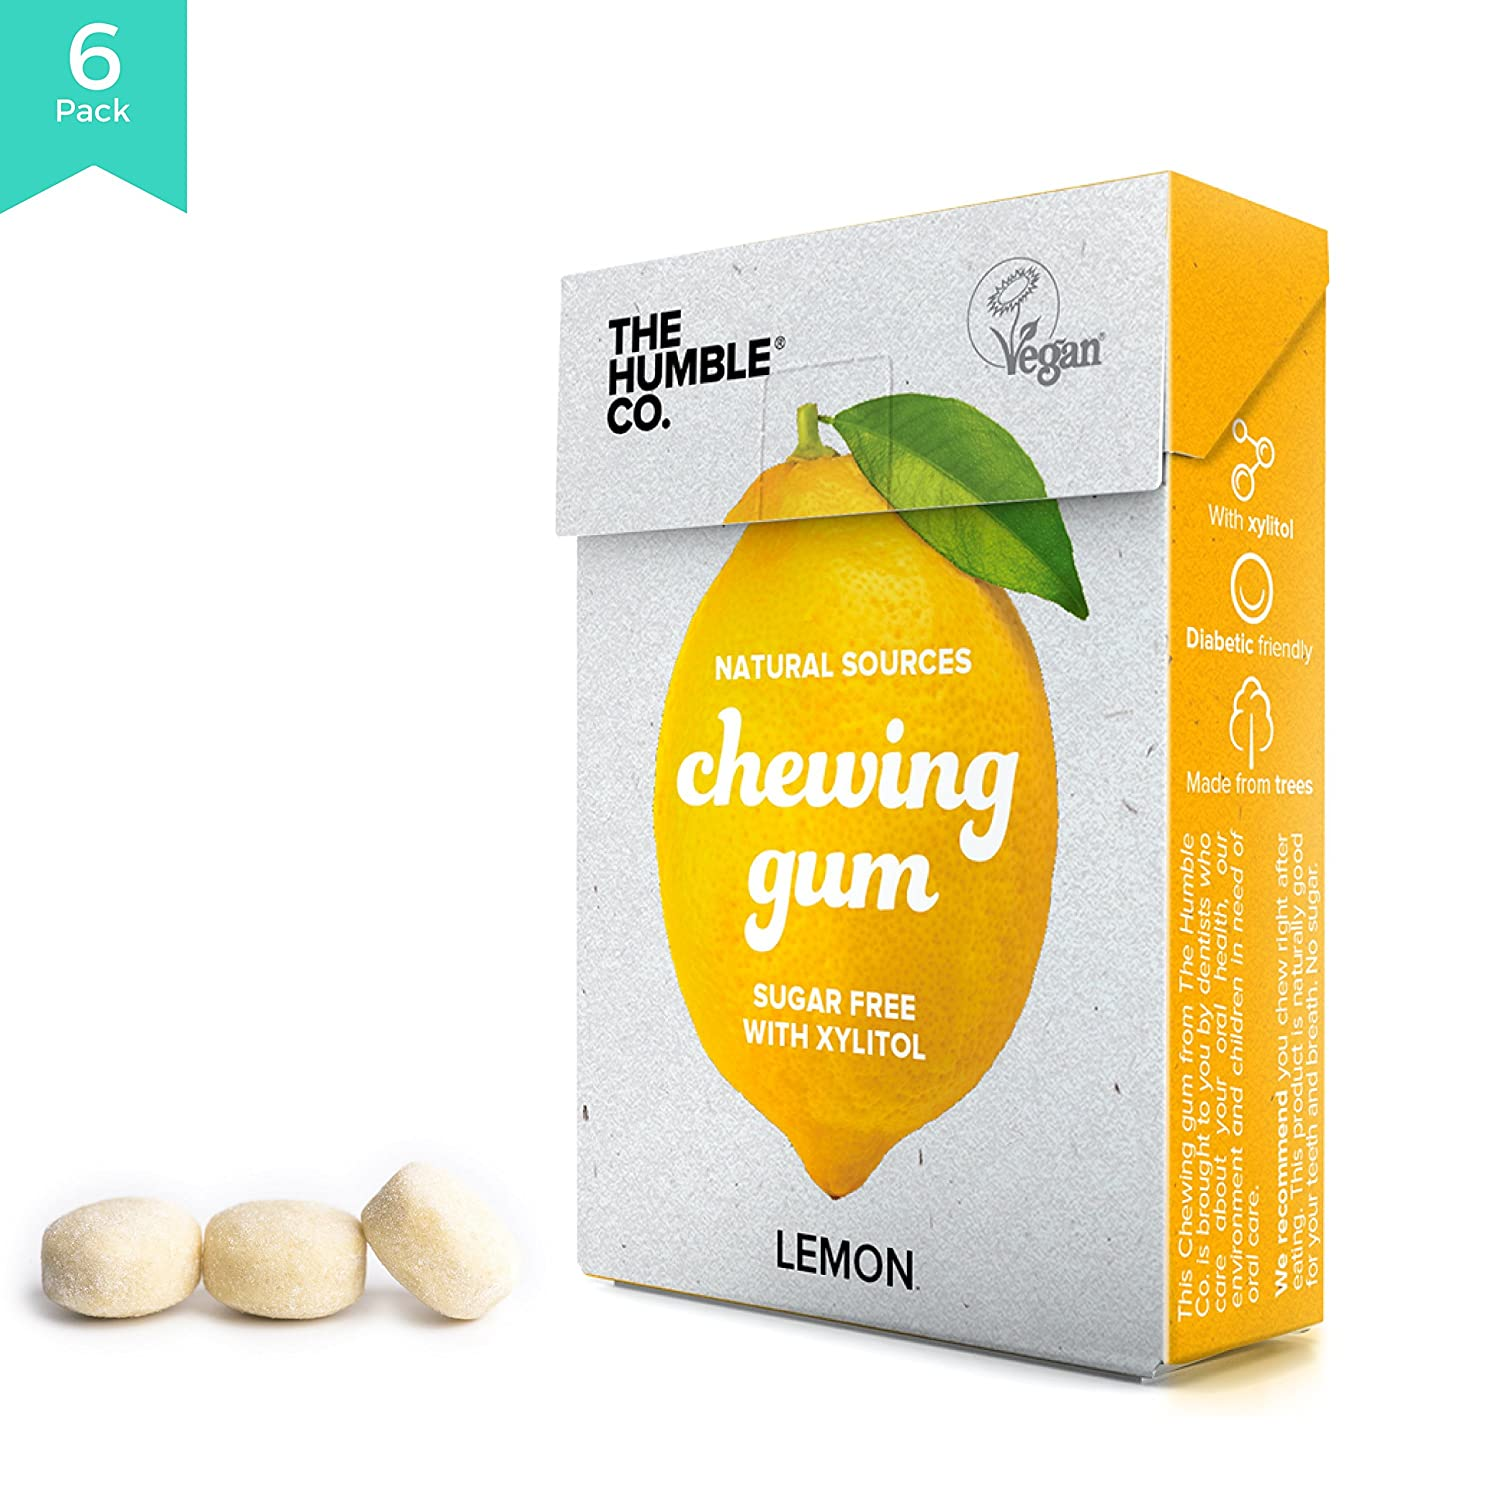 The Humble Co. Natural Chewing Gum